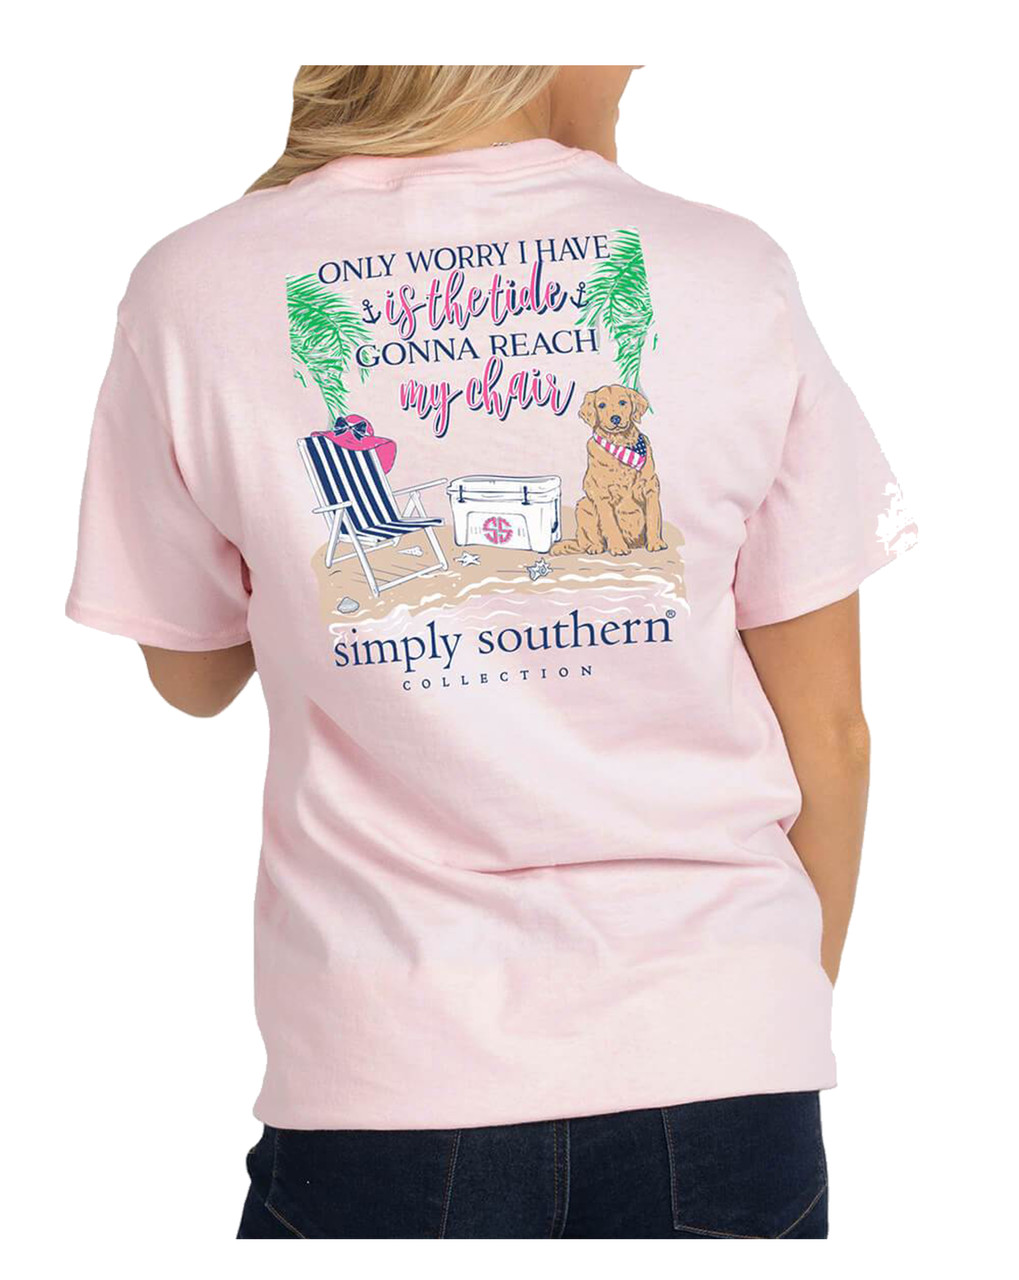 simply southern apparel southern apparel company